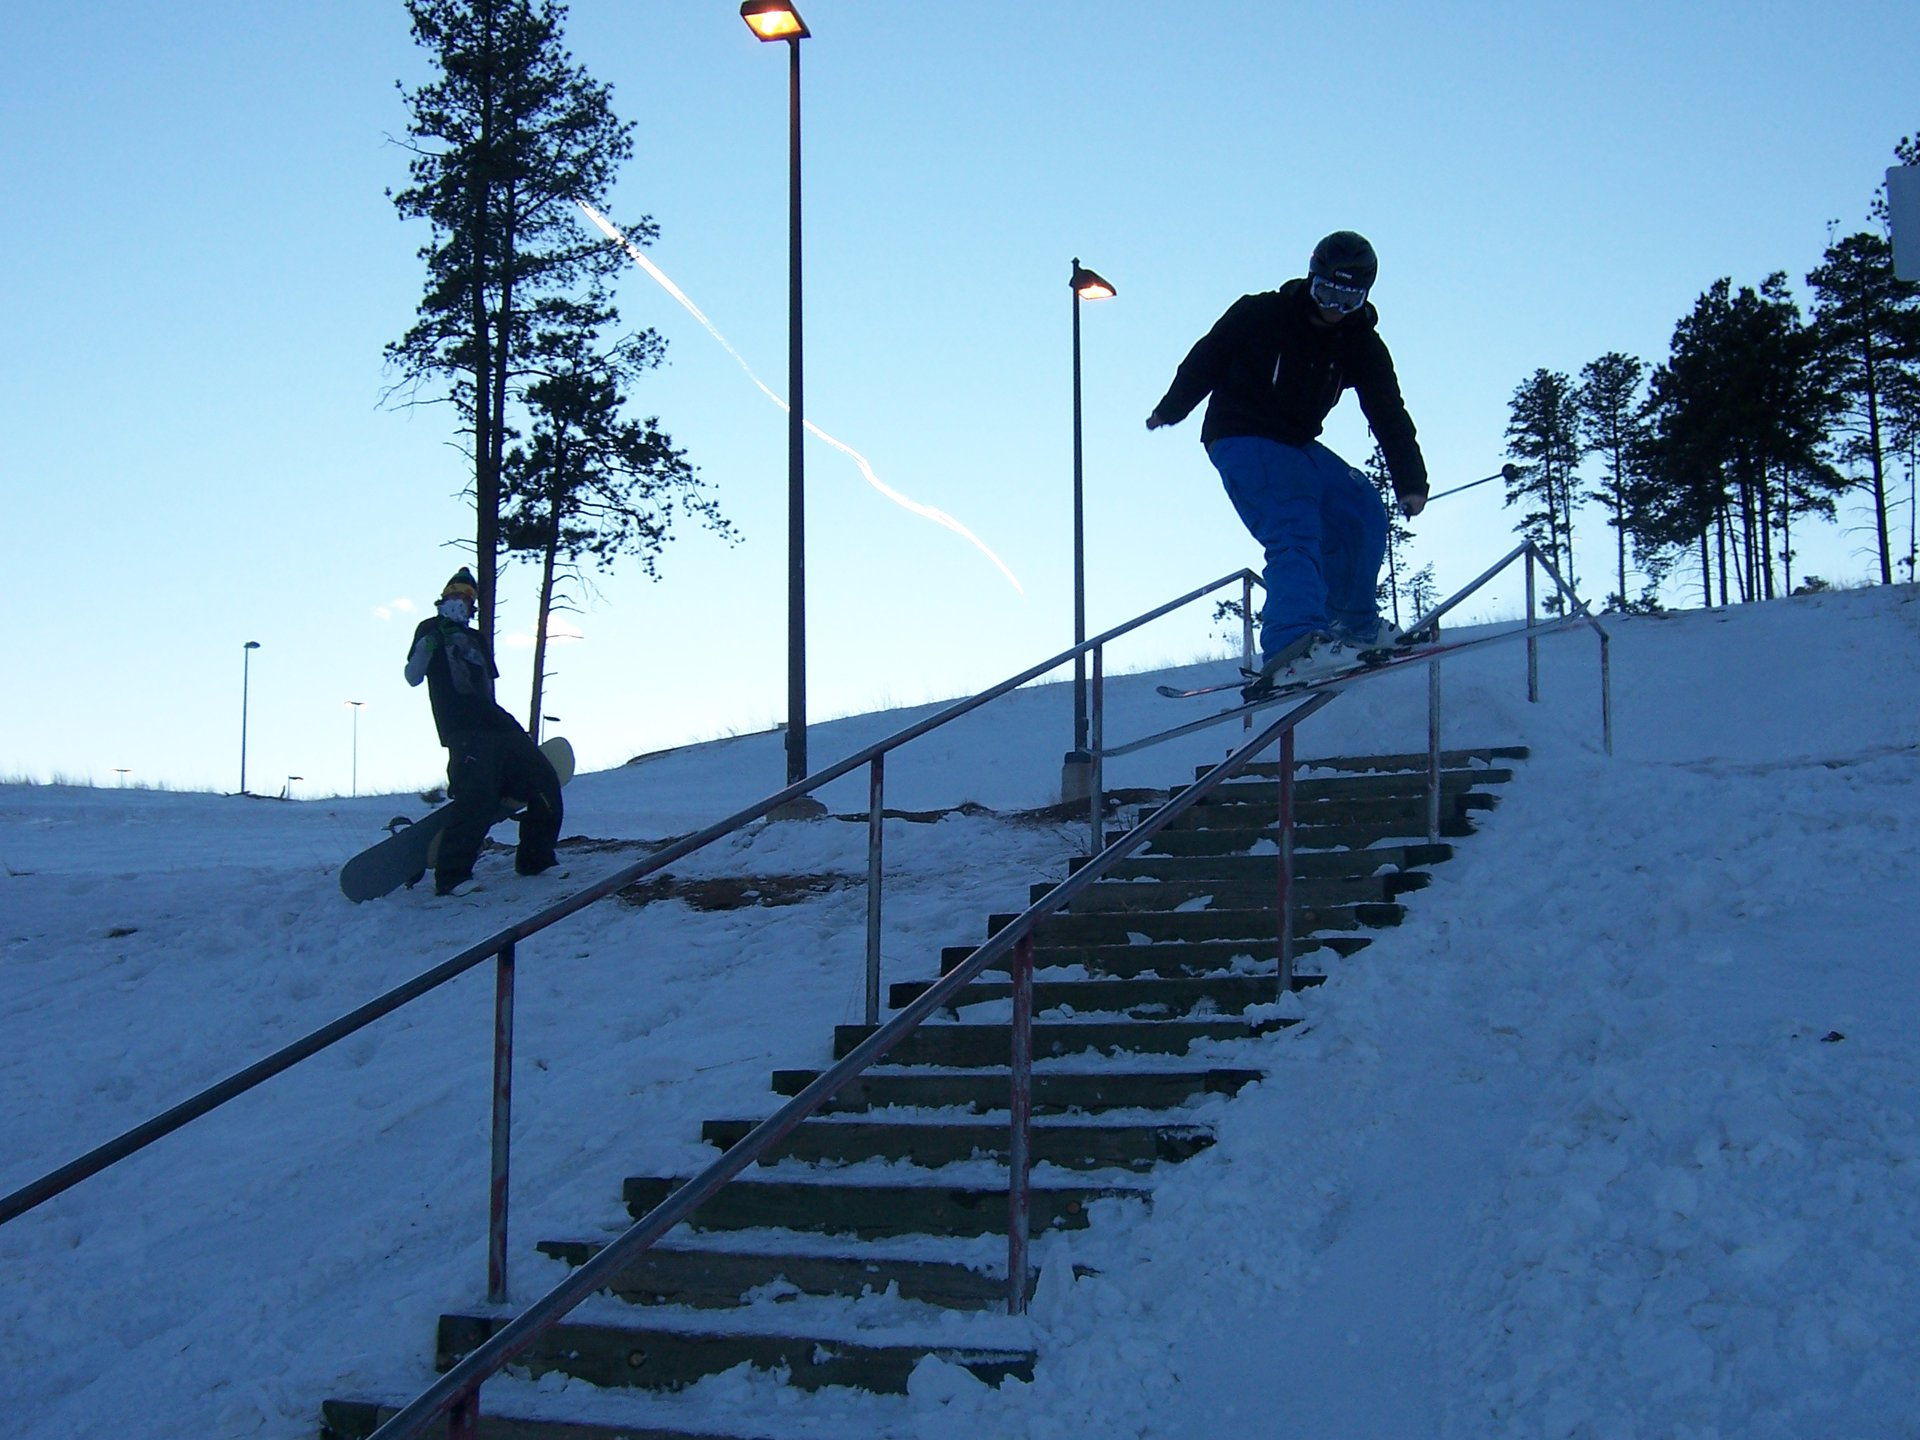 26 Stair at Conifer